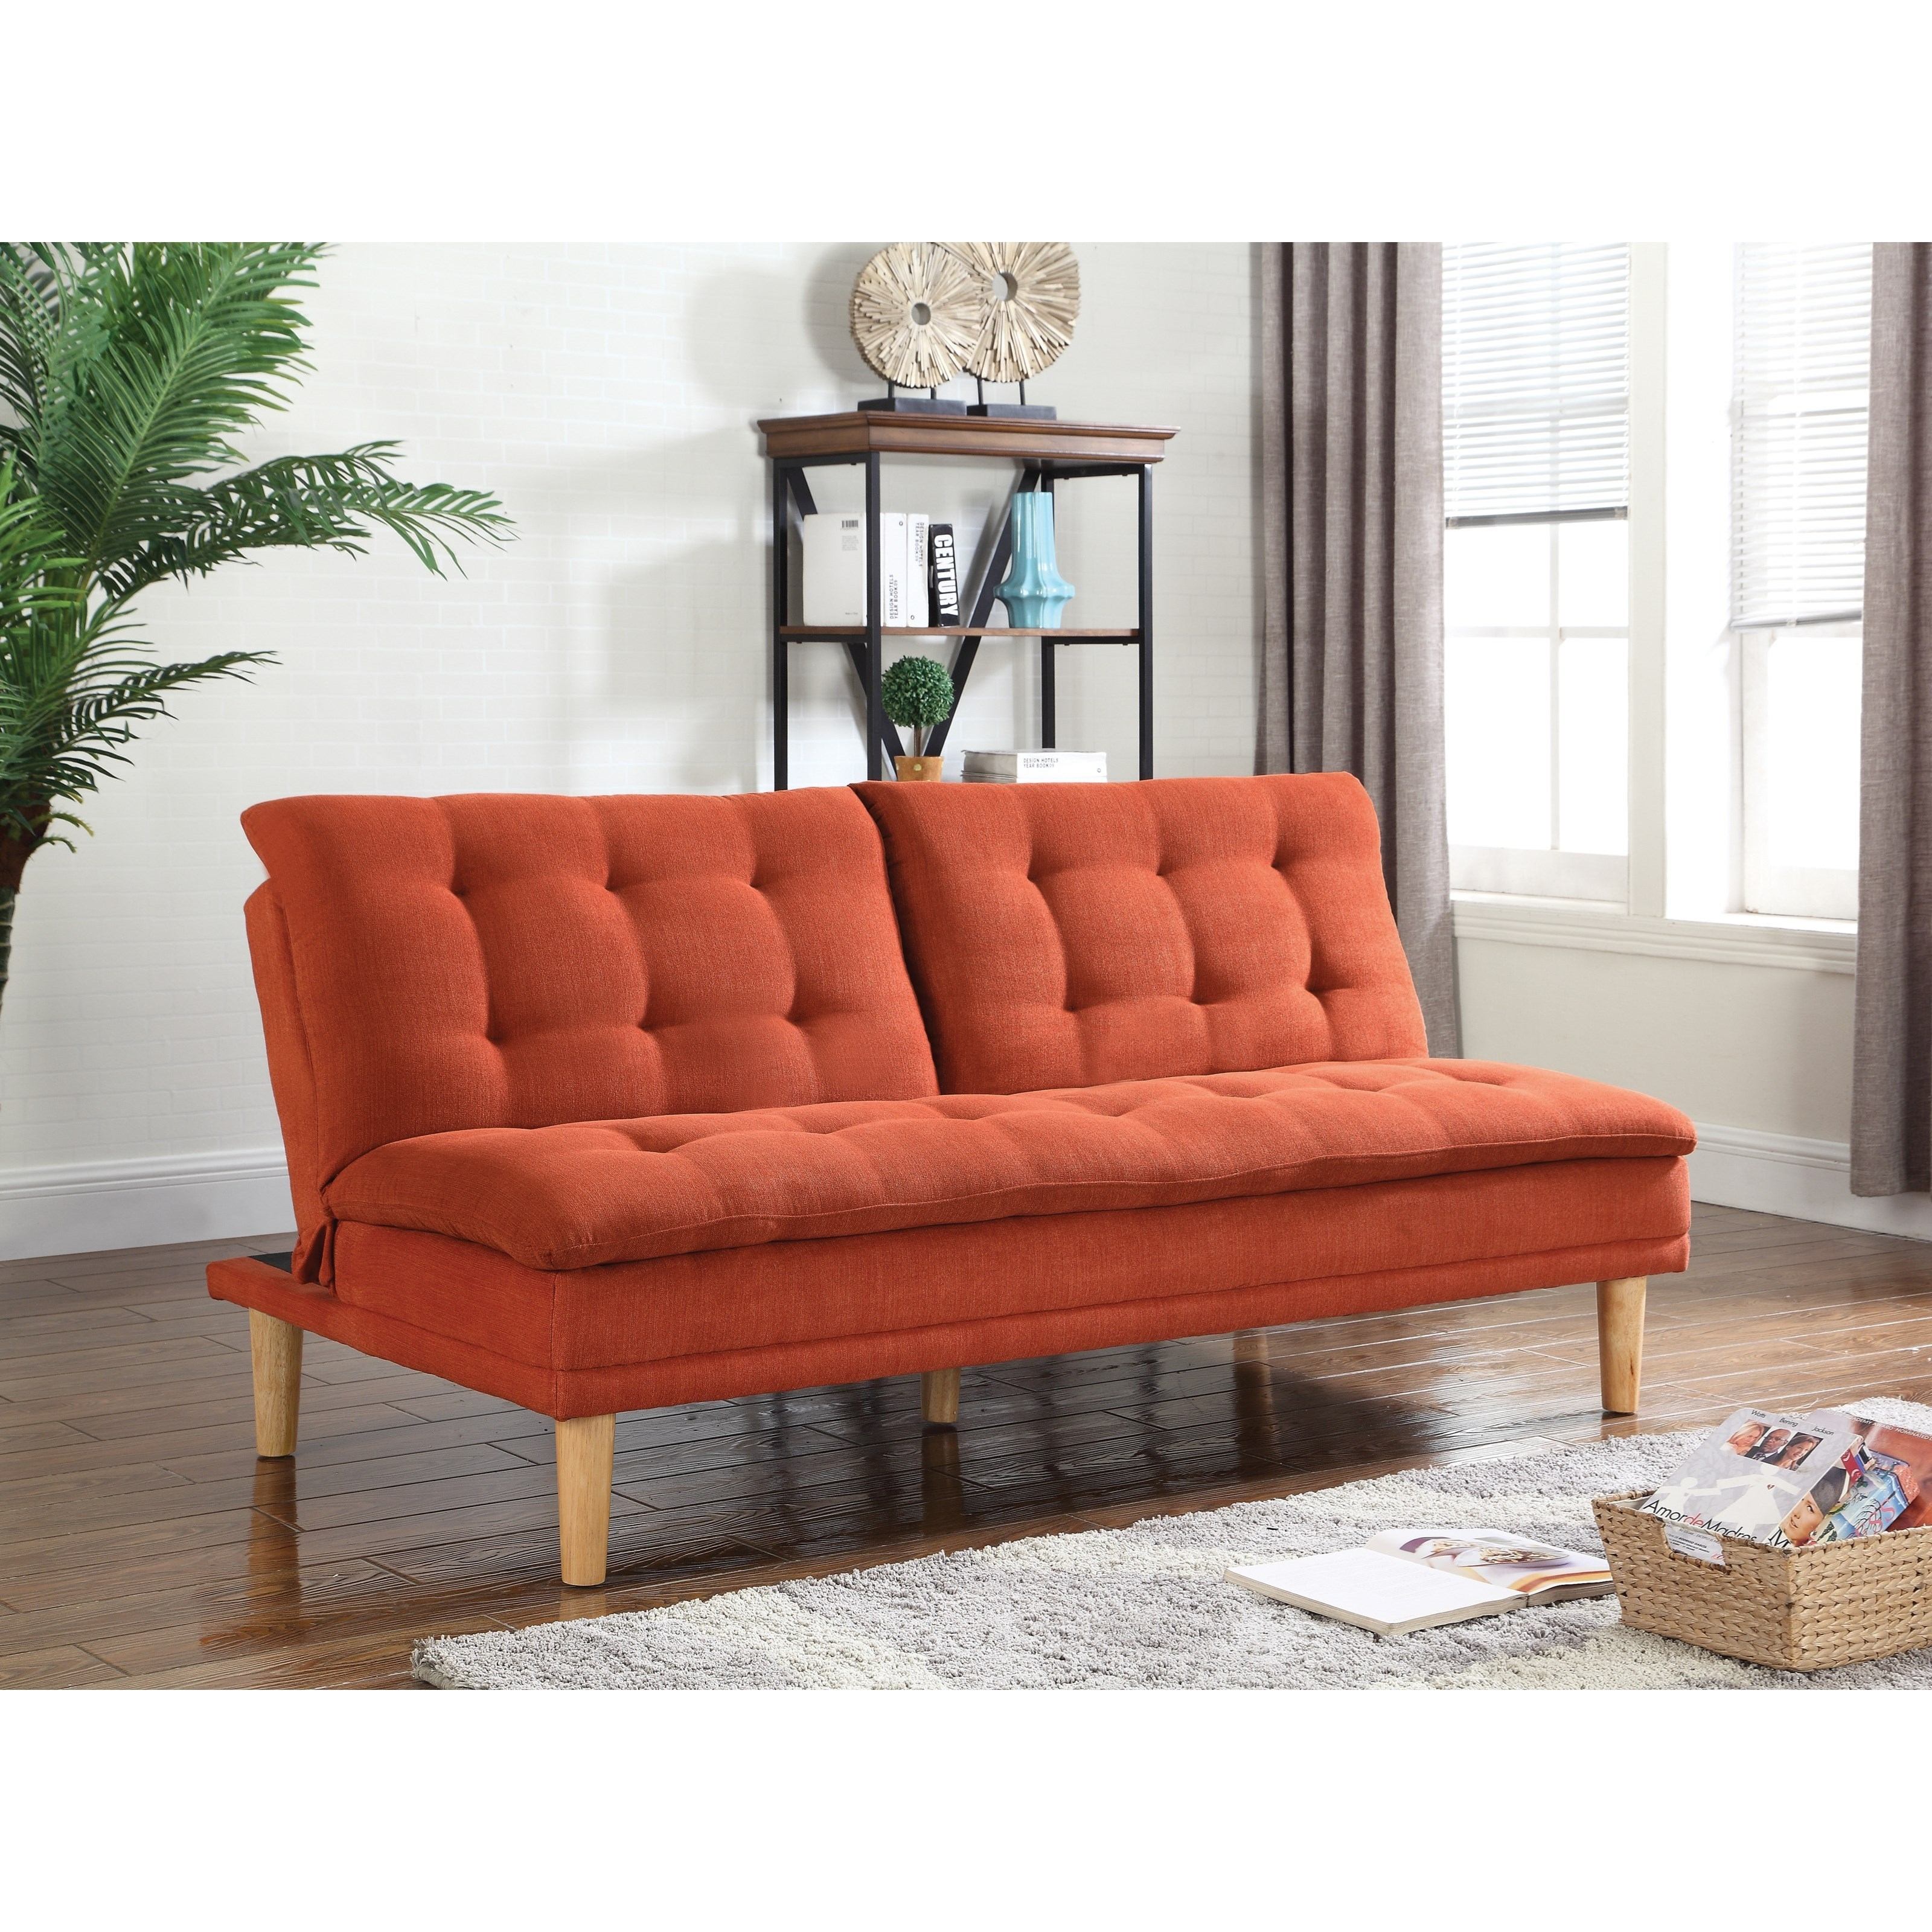 coaster futons sofa bed with button tufting   miskelly furniture   futons coaster futons sofa bed with button tufting   miskelly furniture      rh   miskellys